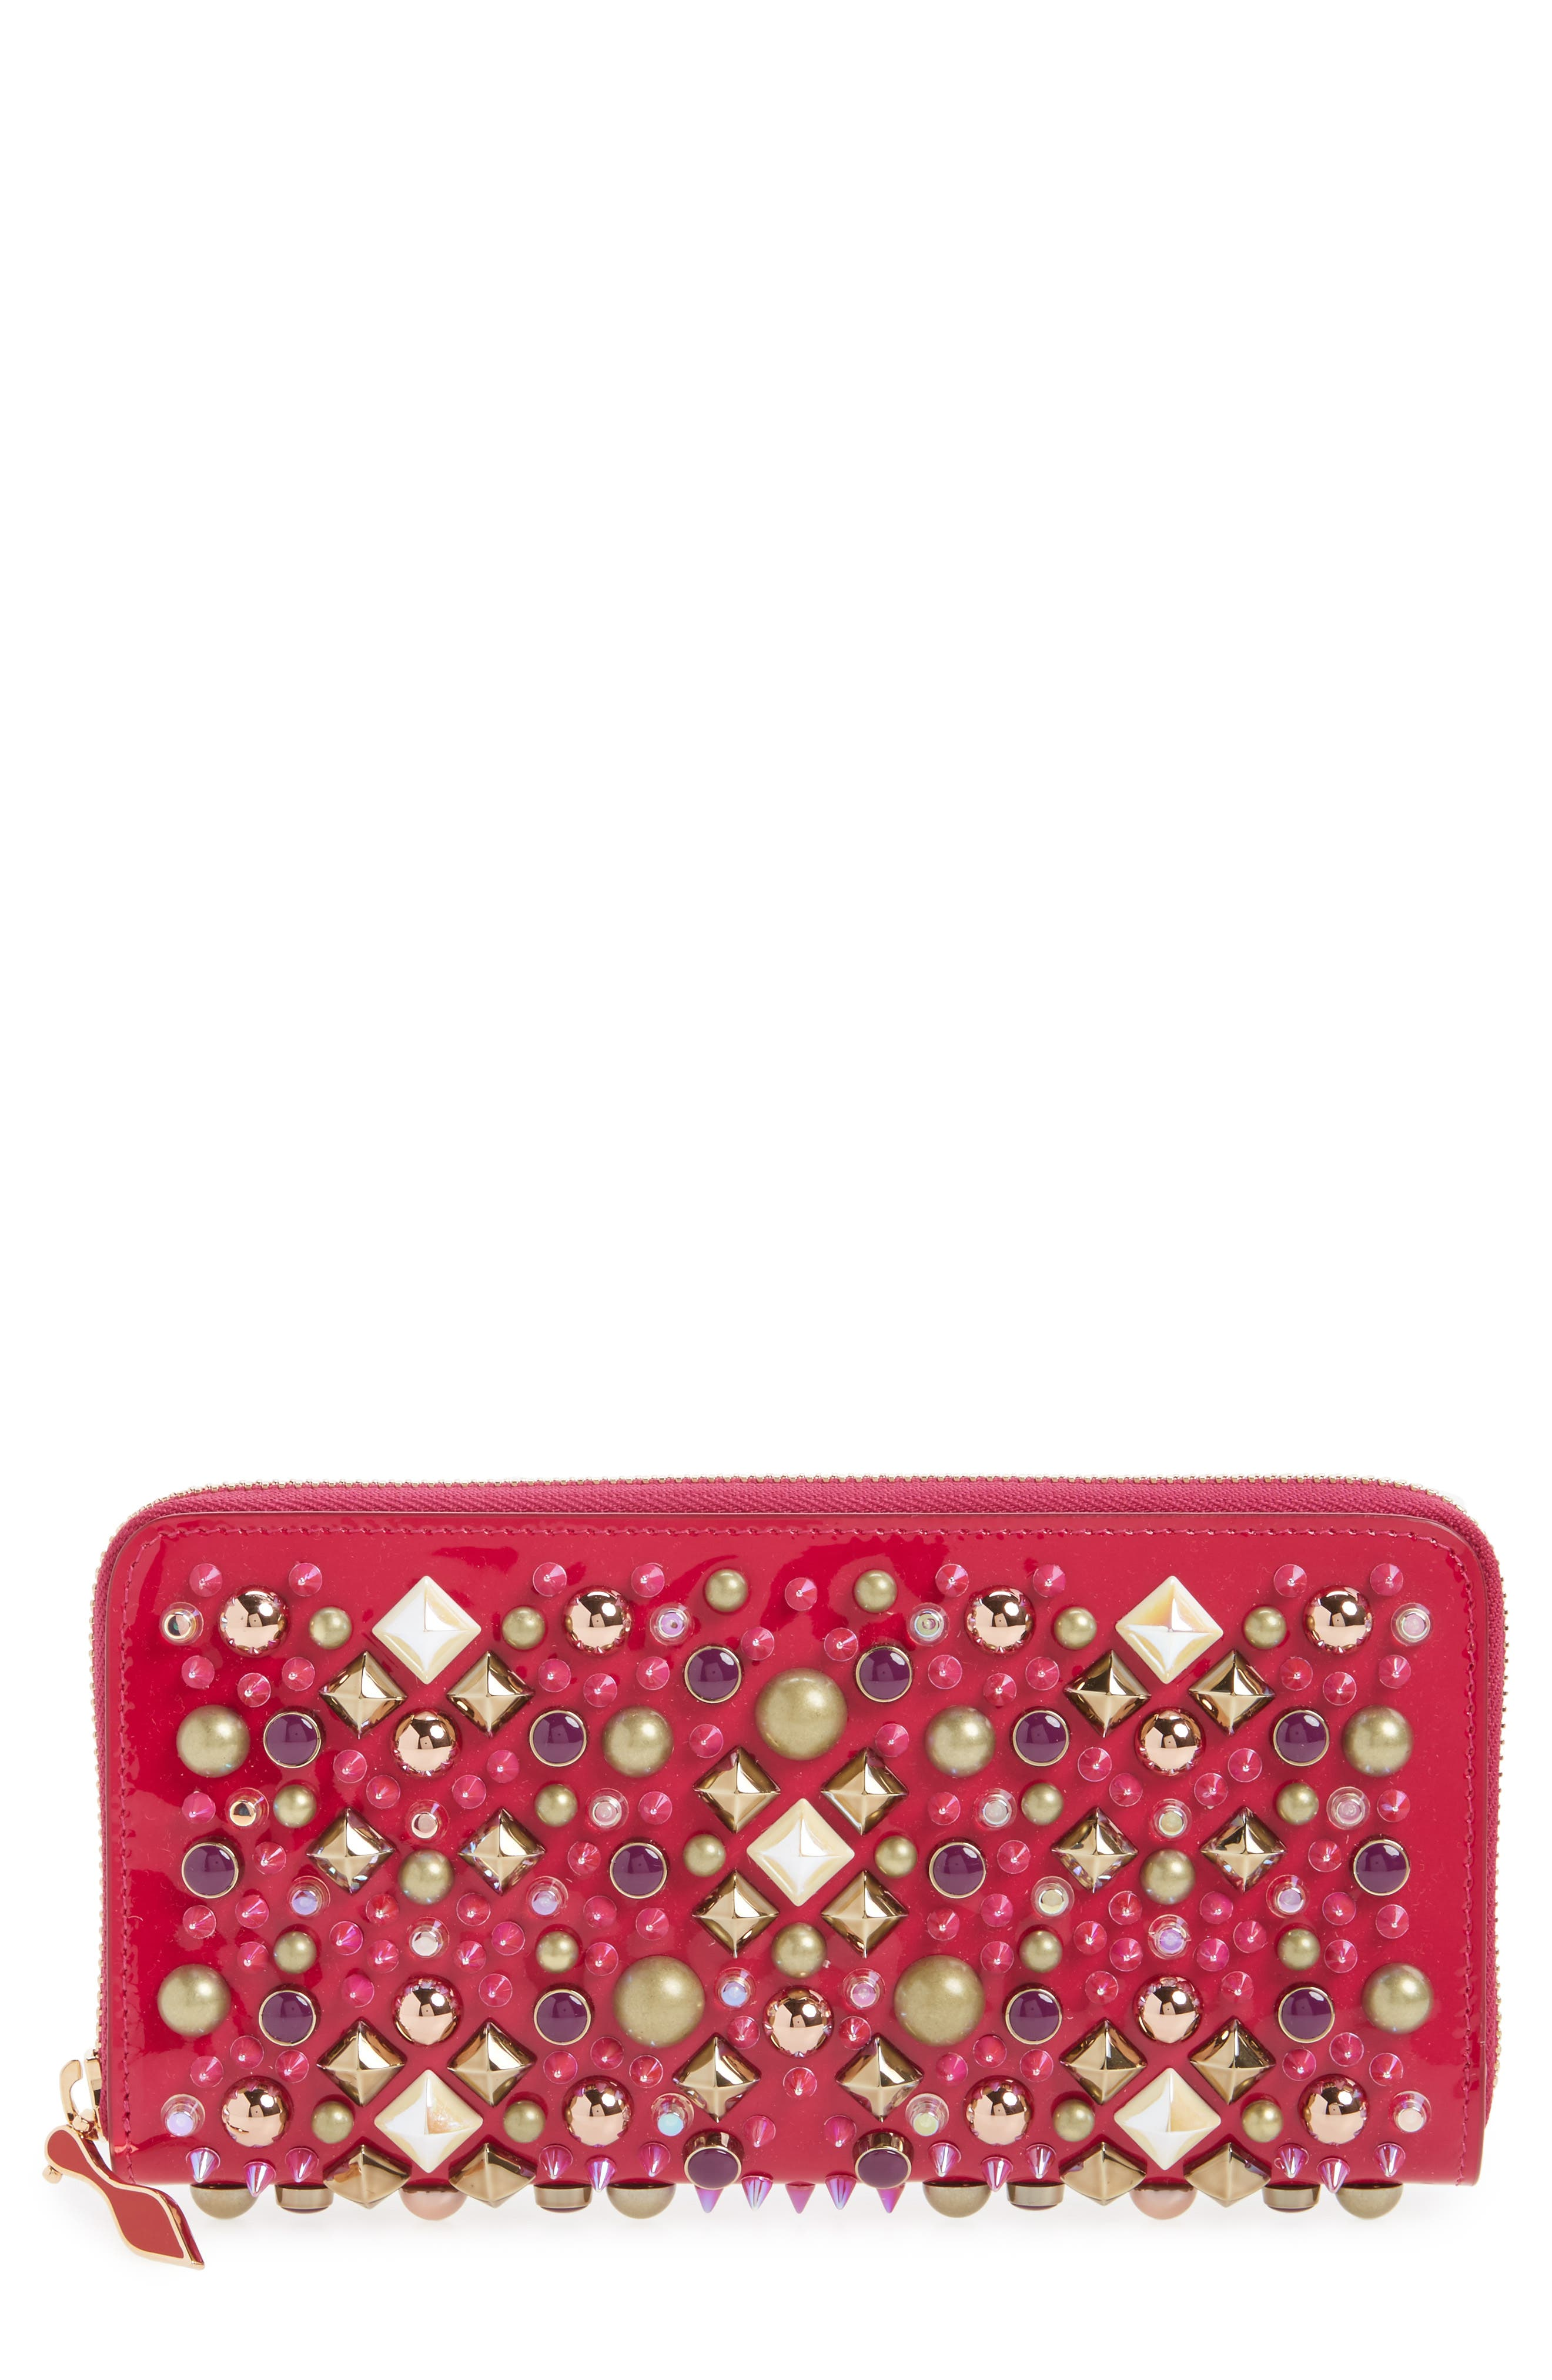 Alternate Image 1 Selected - Christian Louboutin Panettone Spiked Patent Leather Wallet